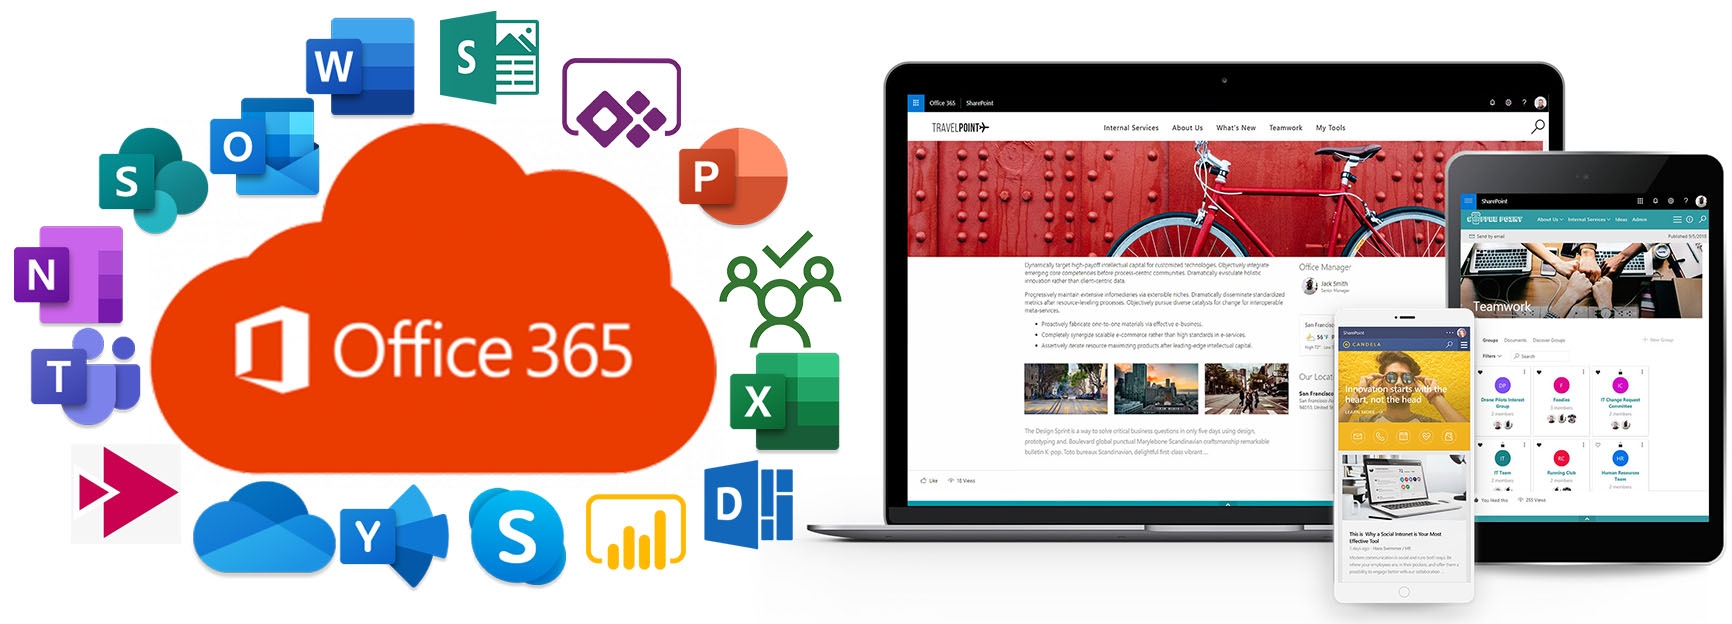 Envision IT, Valo, and Office 365